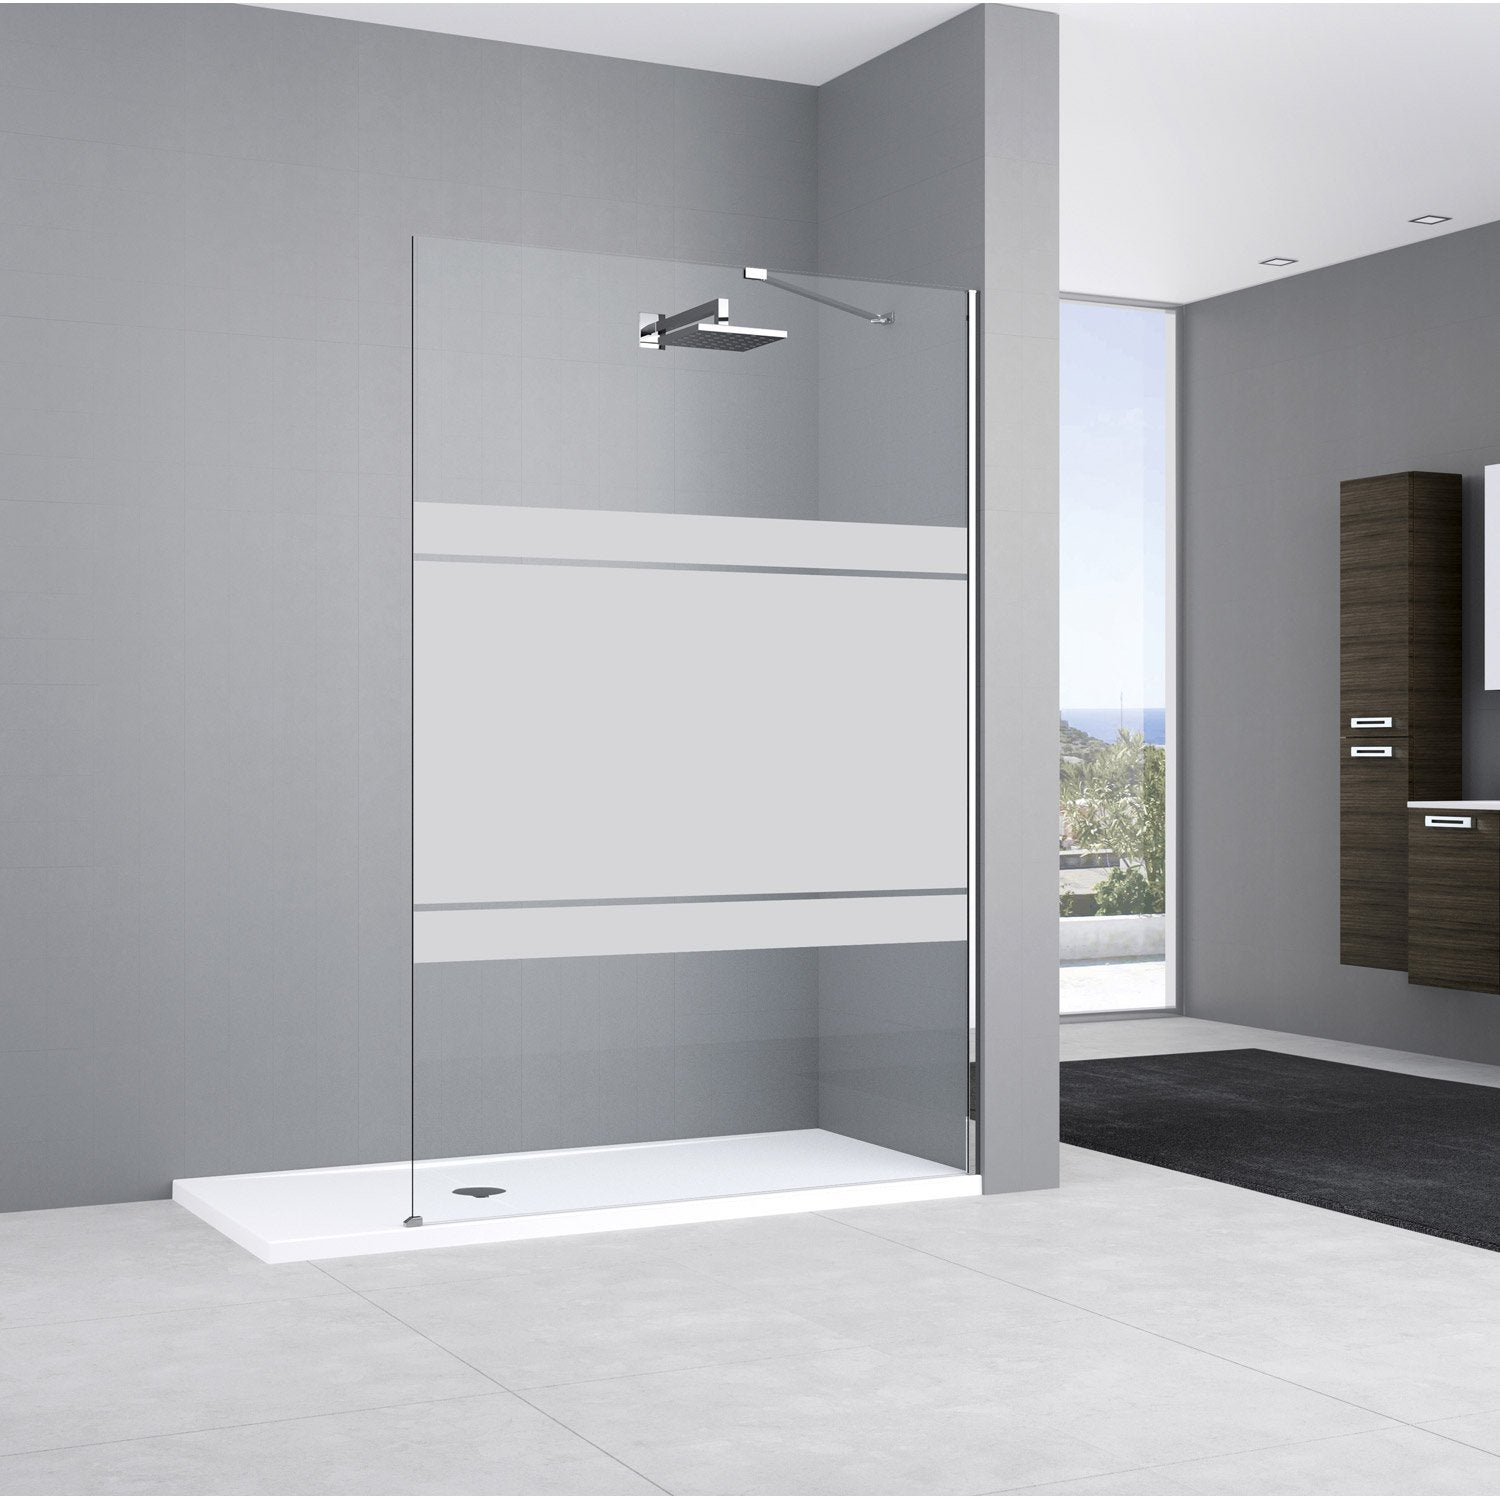 paroi de douche l 39 italienne cm verre s rigraphi 8 mm elisea leroy merlin. Black Bedroom Furniture Sets. Home Design Ideas